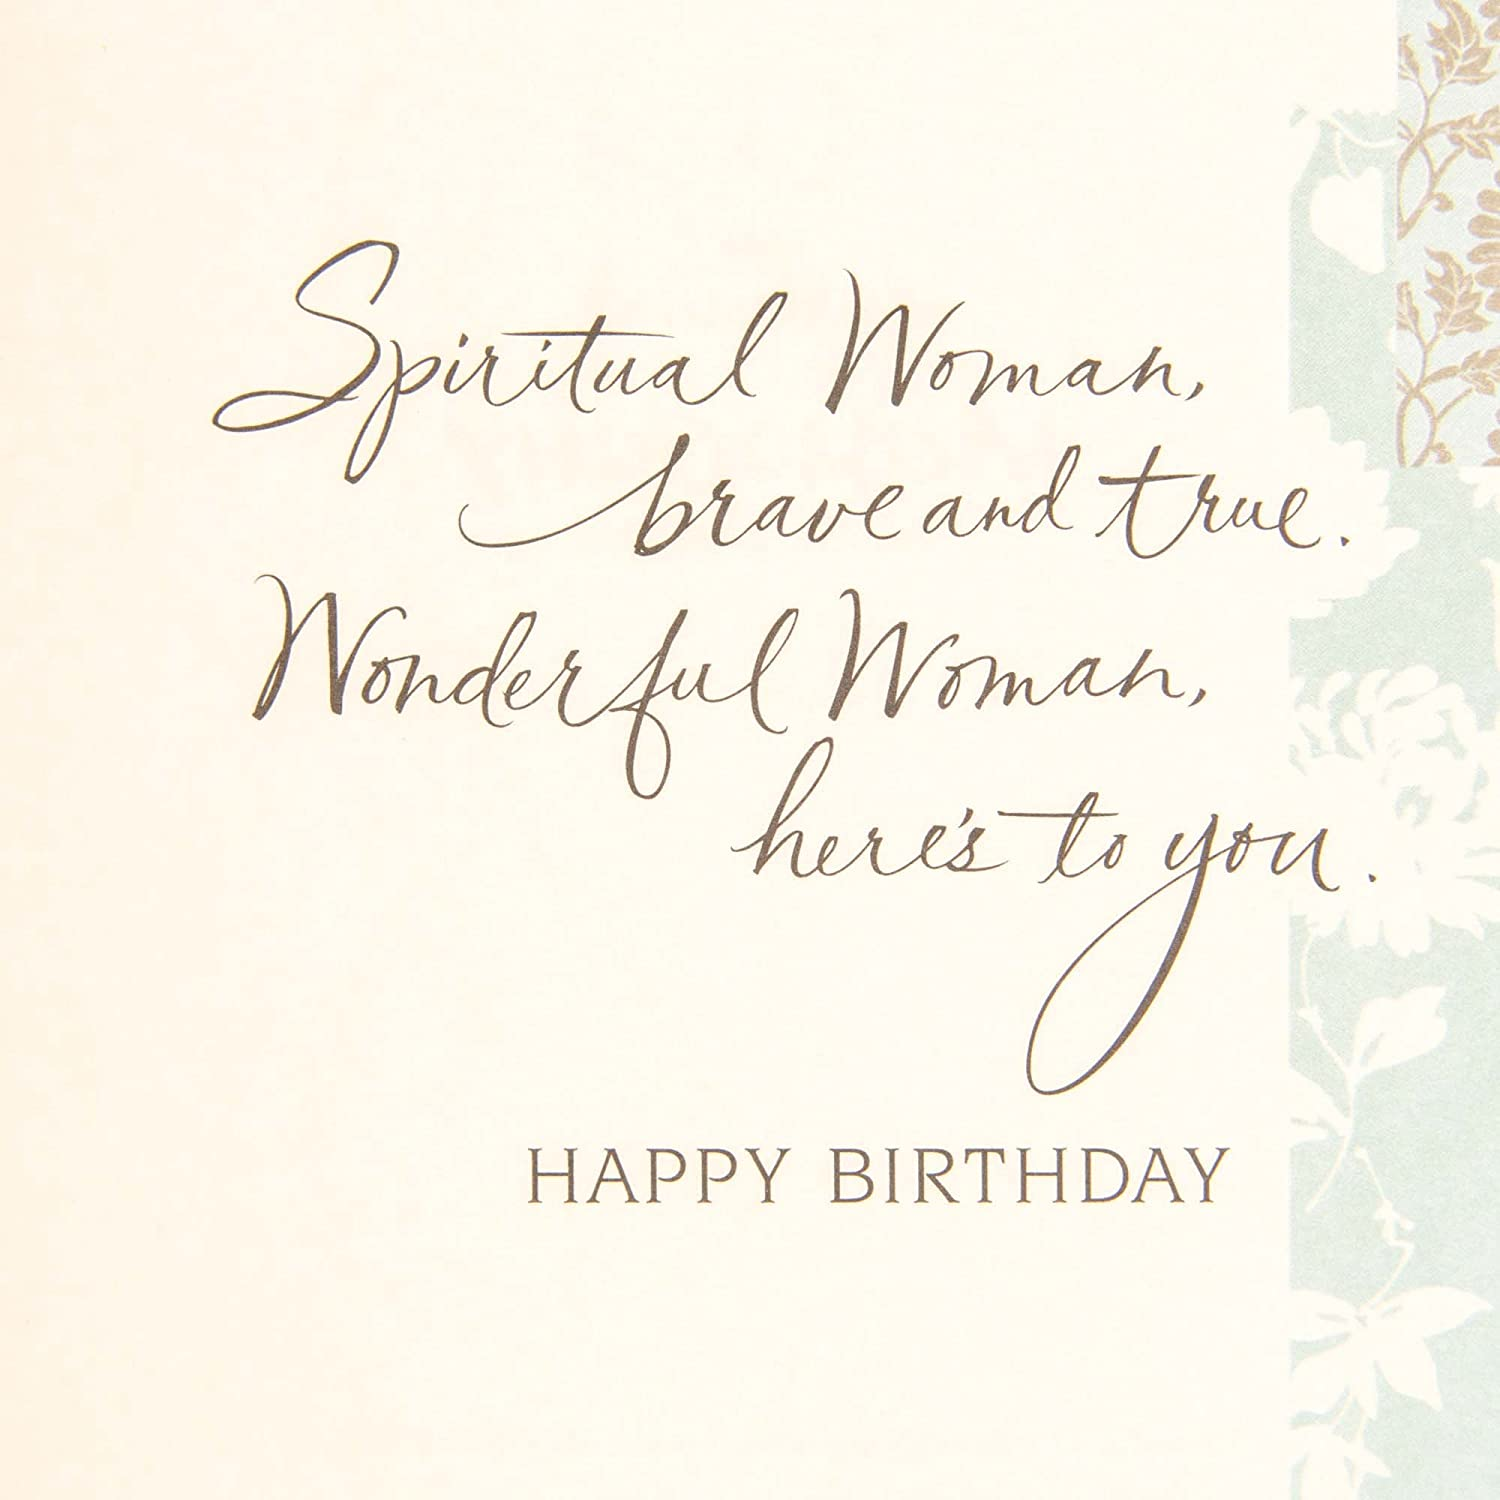 amazoncom hallmark mahogany birthday greeting card spiritual and wonderful woman office products